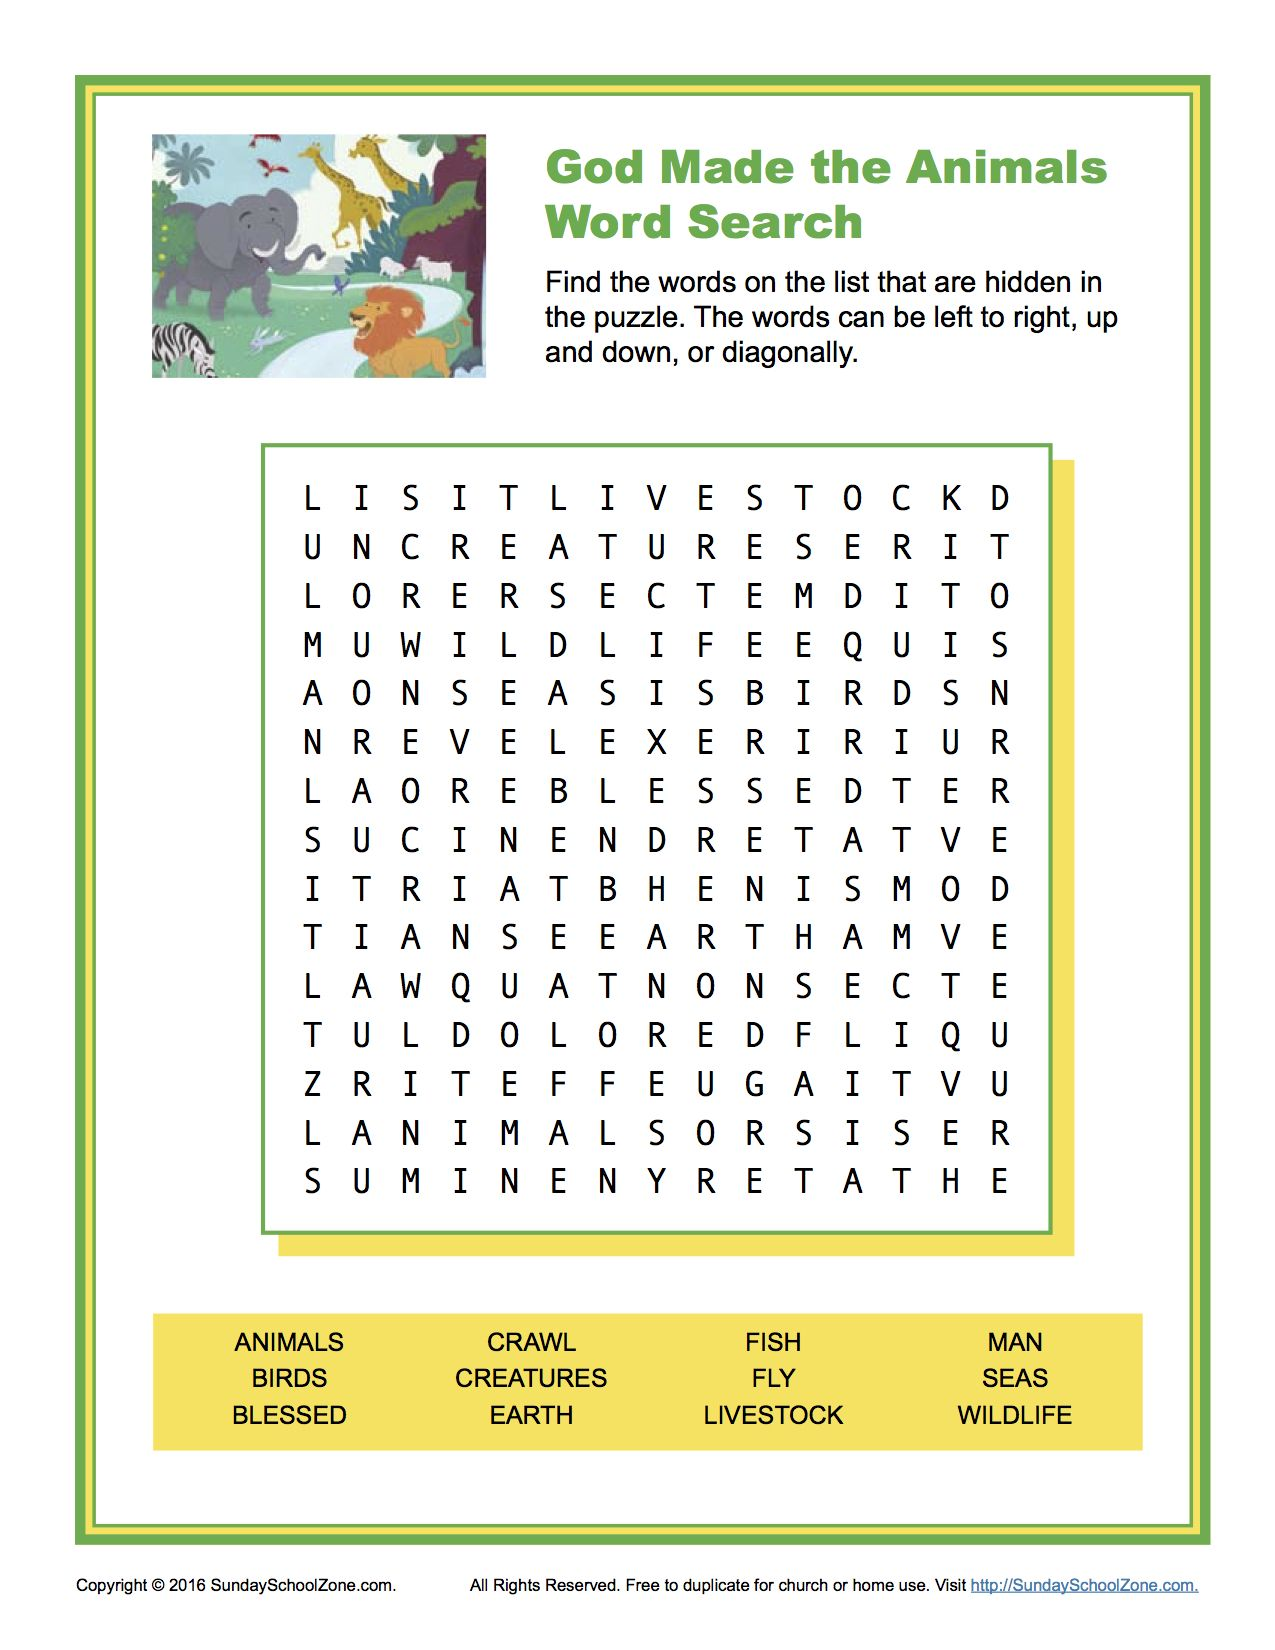 God Made The Animals Word Search